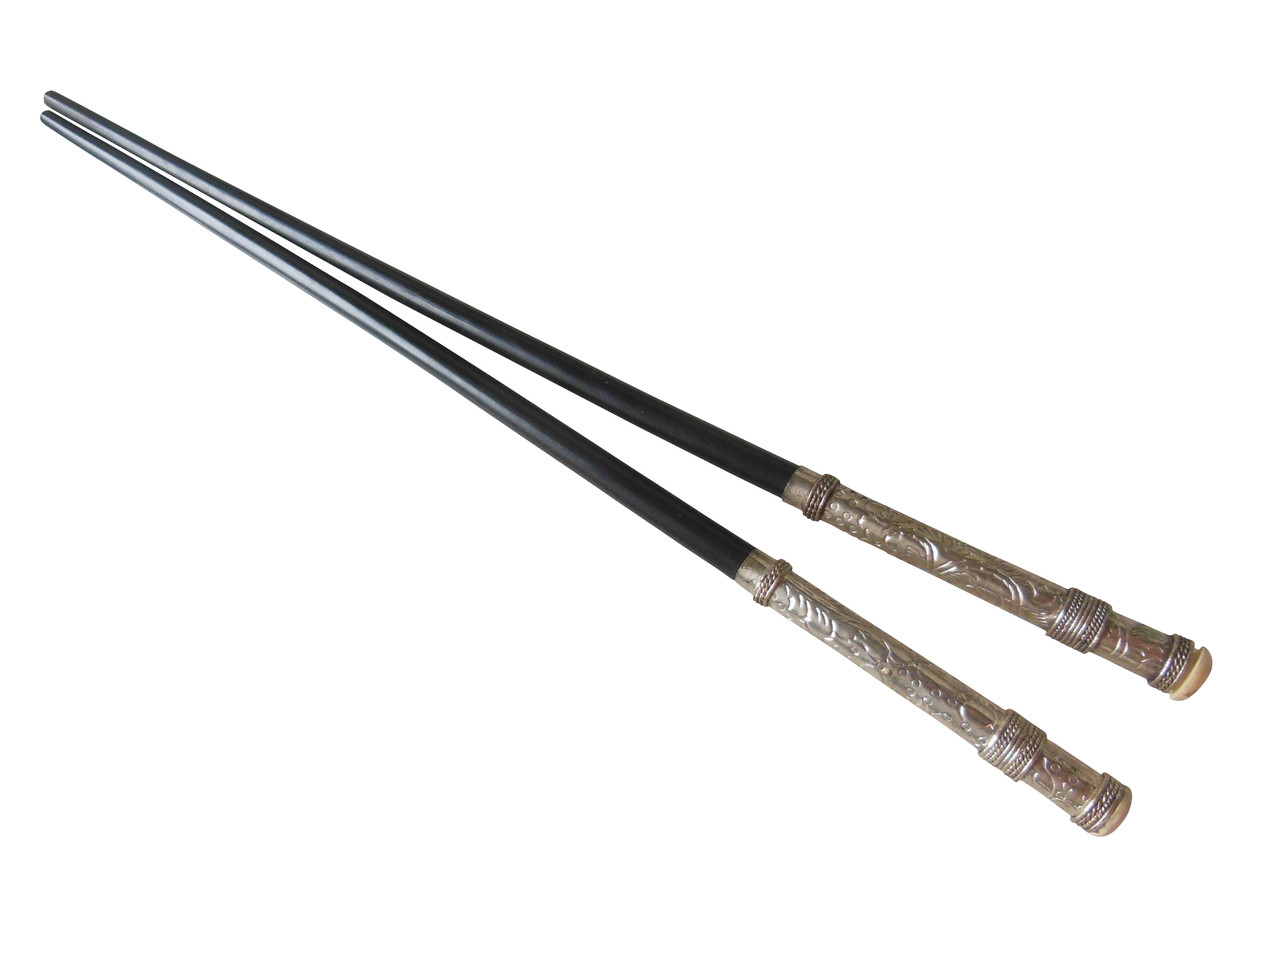 Chopsticks in wood and carved sterling silver with cap end